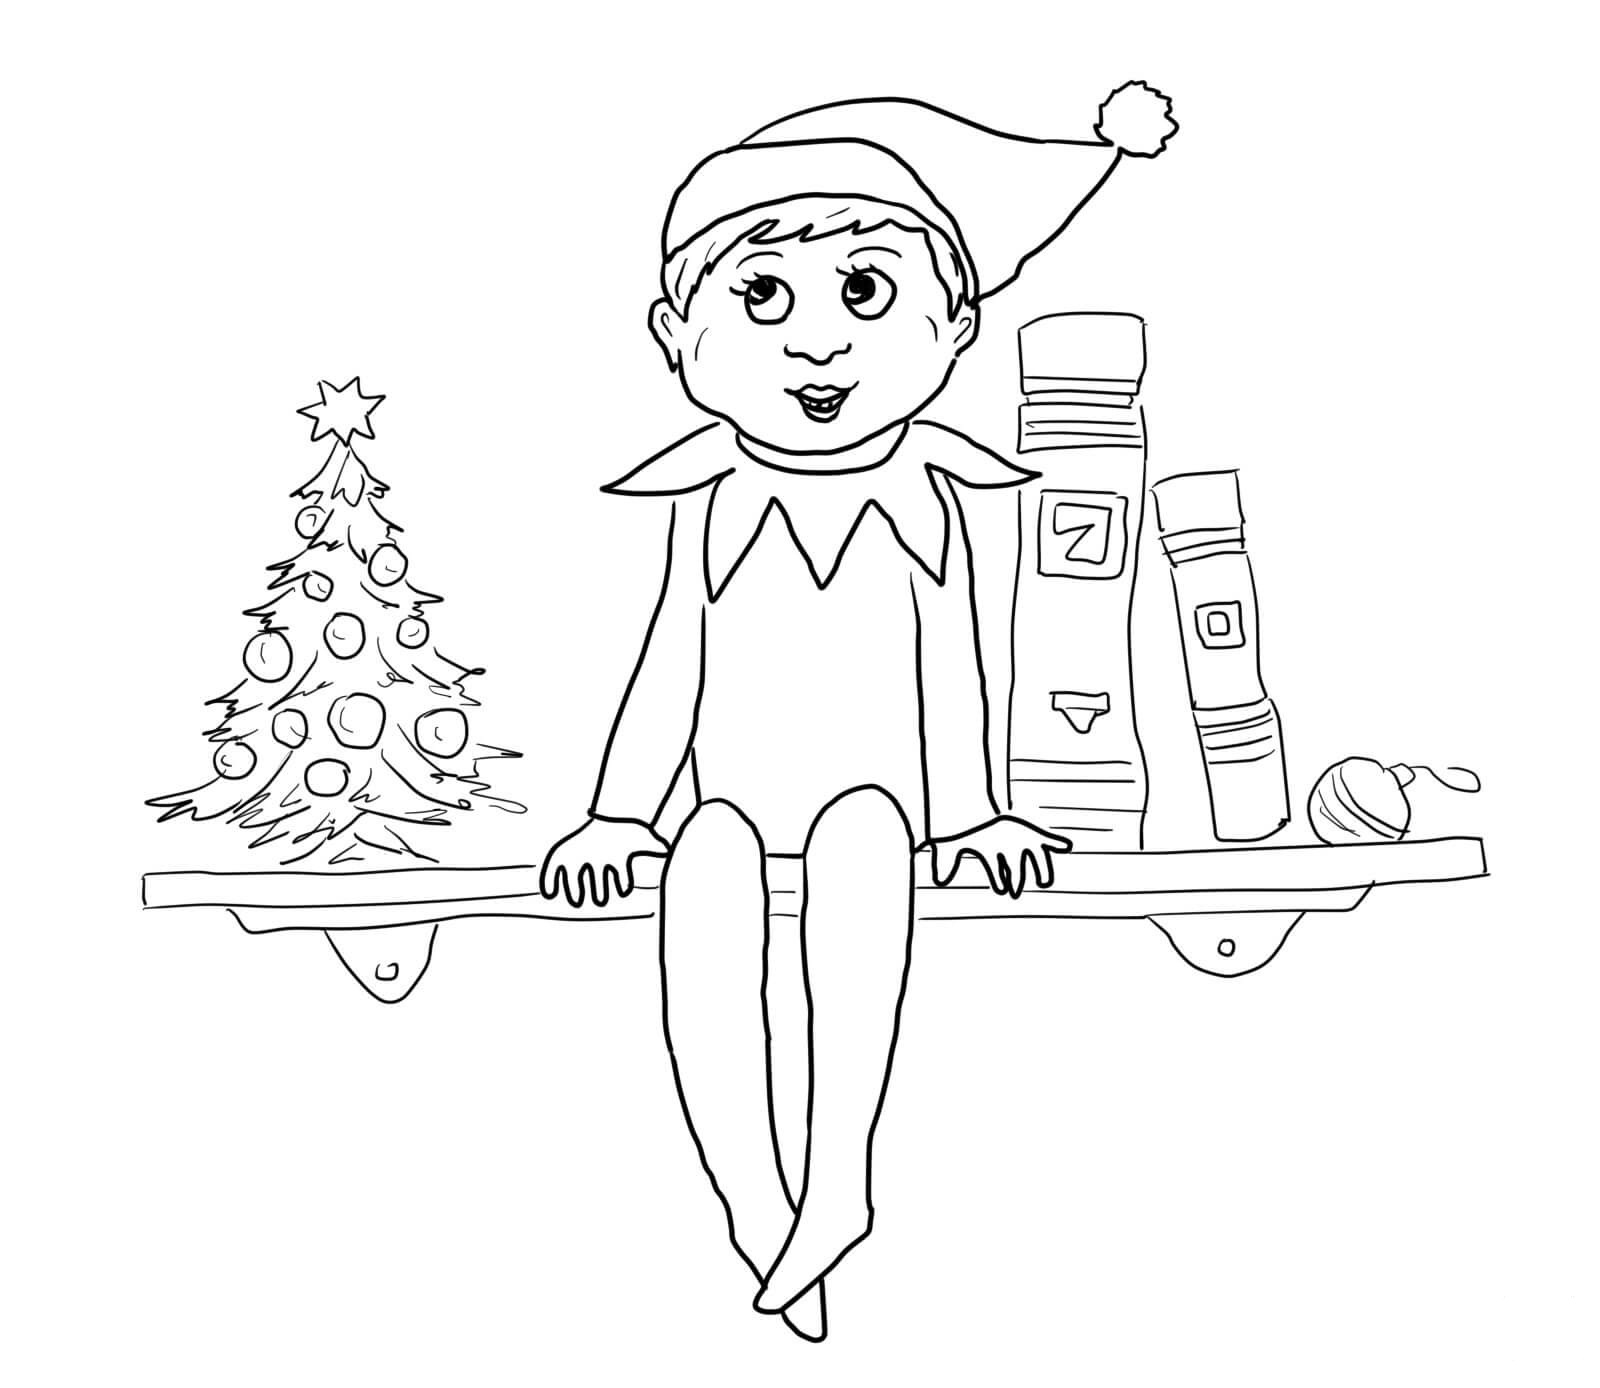 coloring pages elves coloring page kids for fantasy image photos elves pages elves coloring